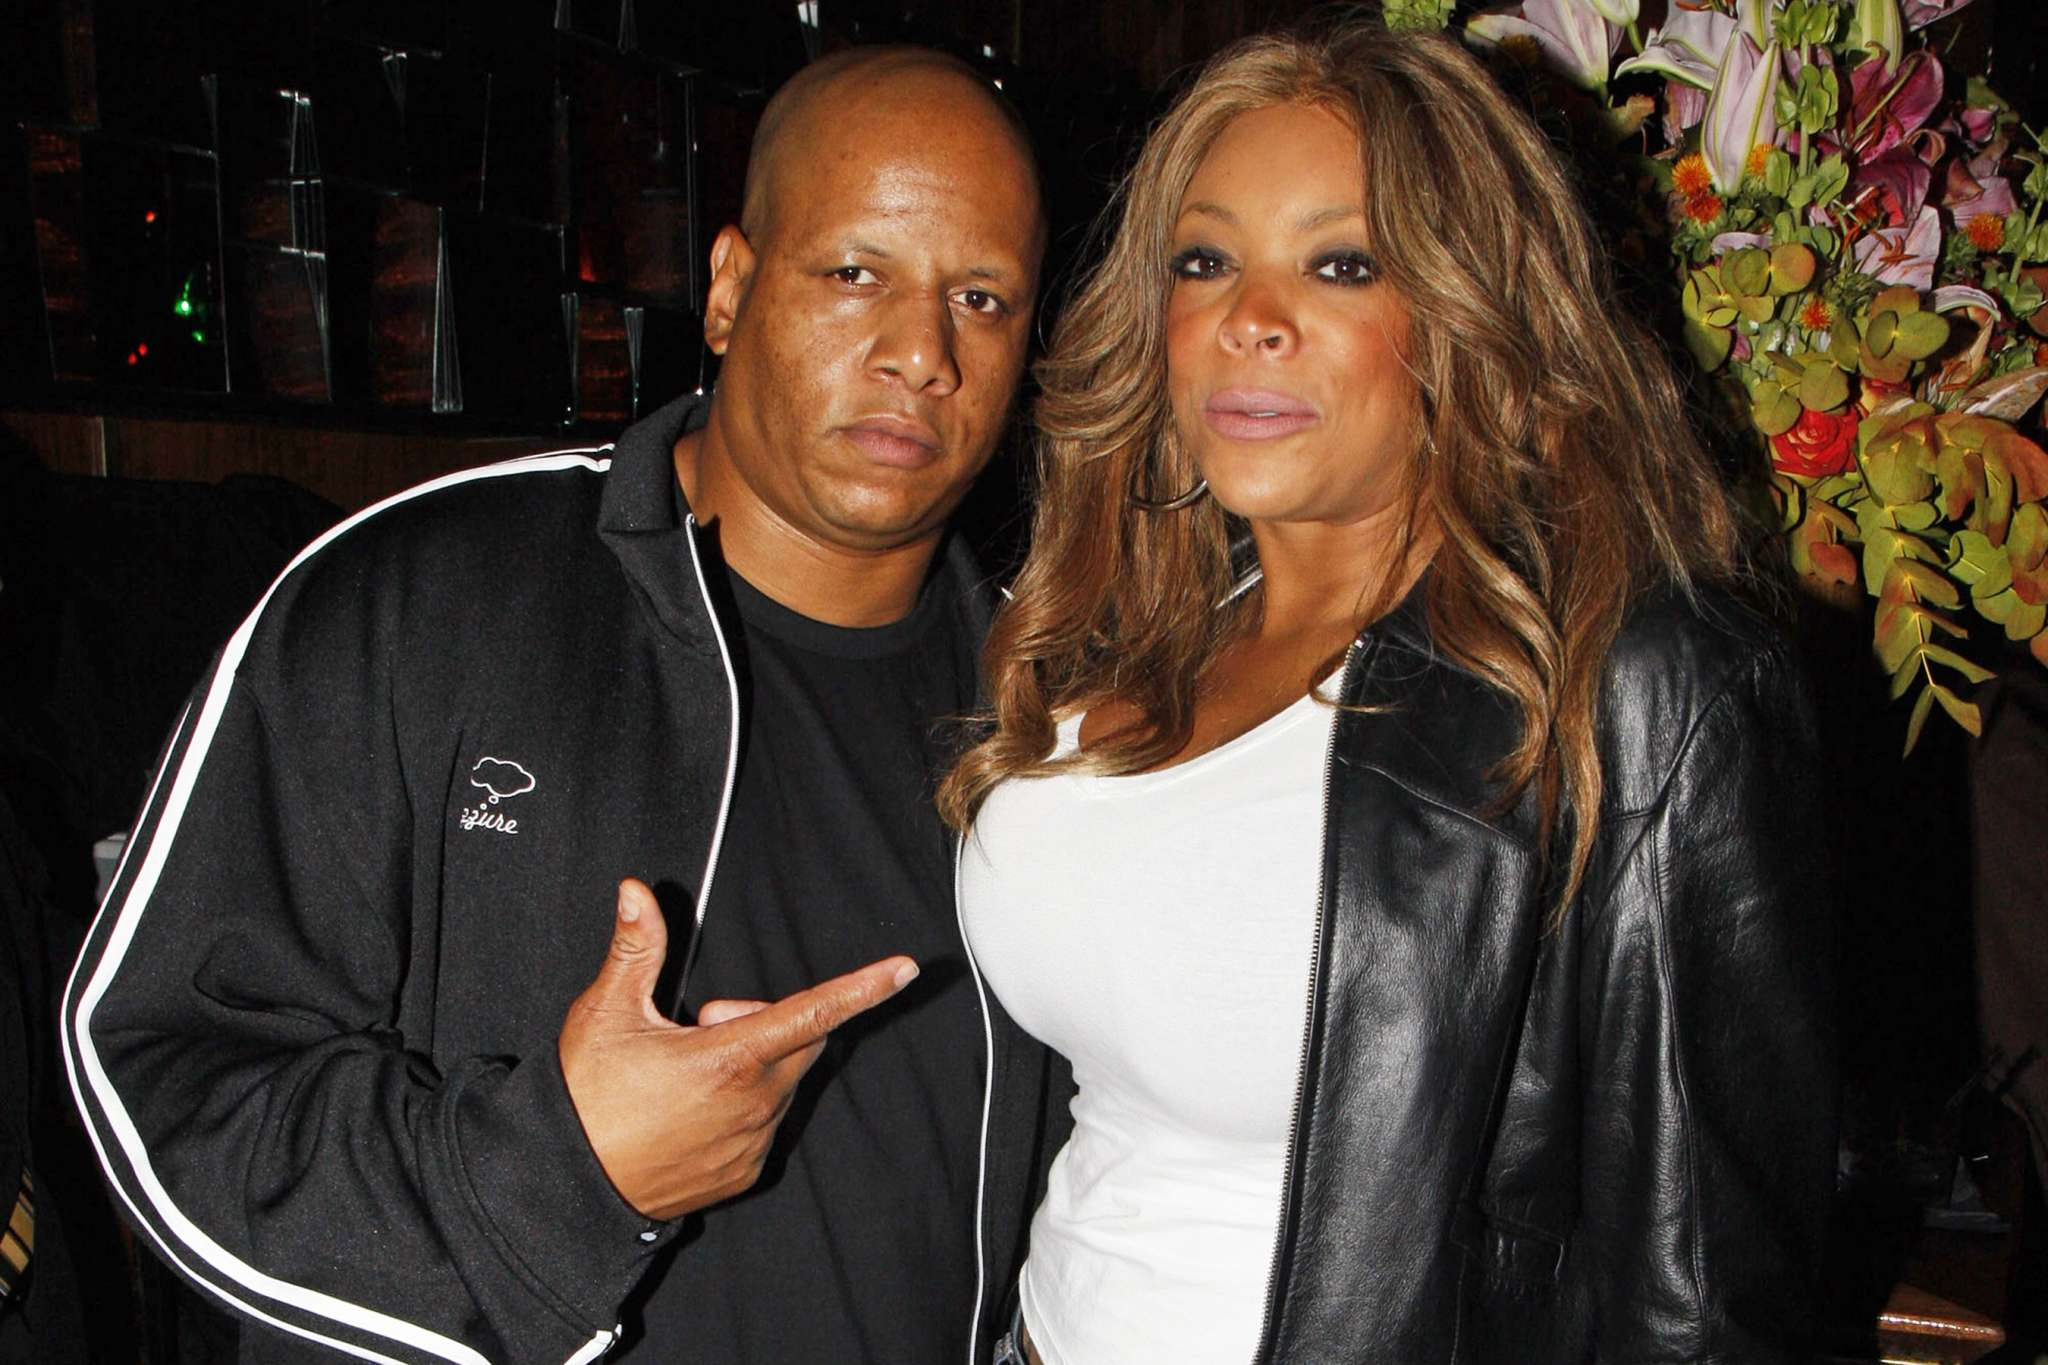 wendy-williams-fans-rejoice-seeing-her-much-happier-following-the-firing-of-cheating-husband-kevin-hunter